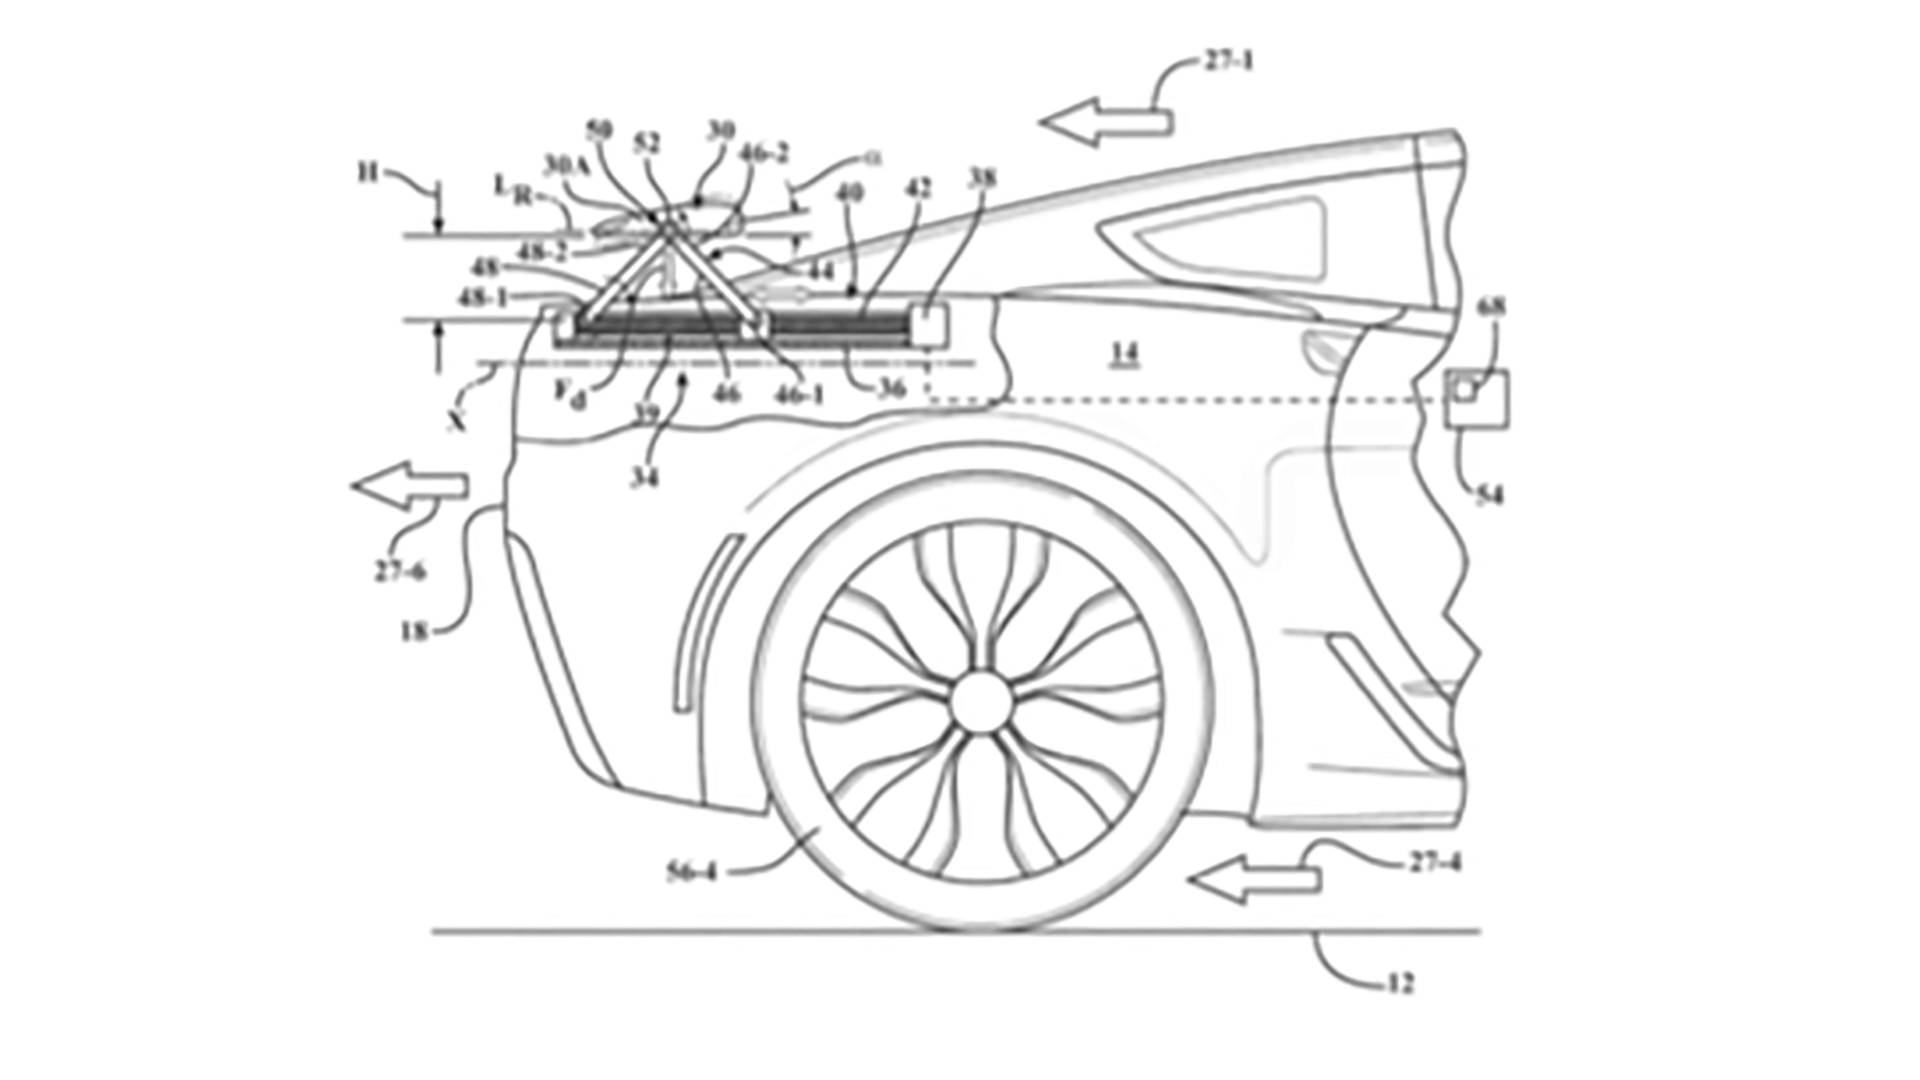 chevy-corvette-active-aero-patents (7)